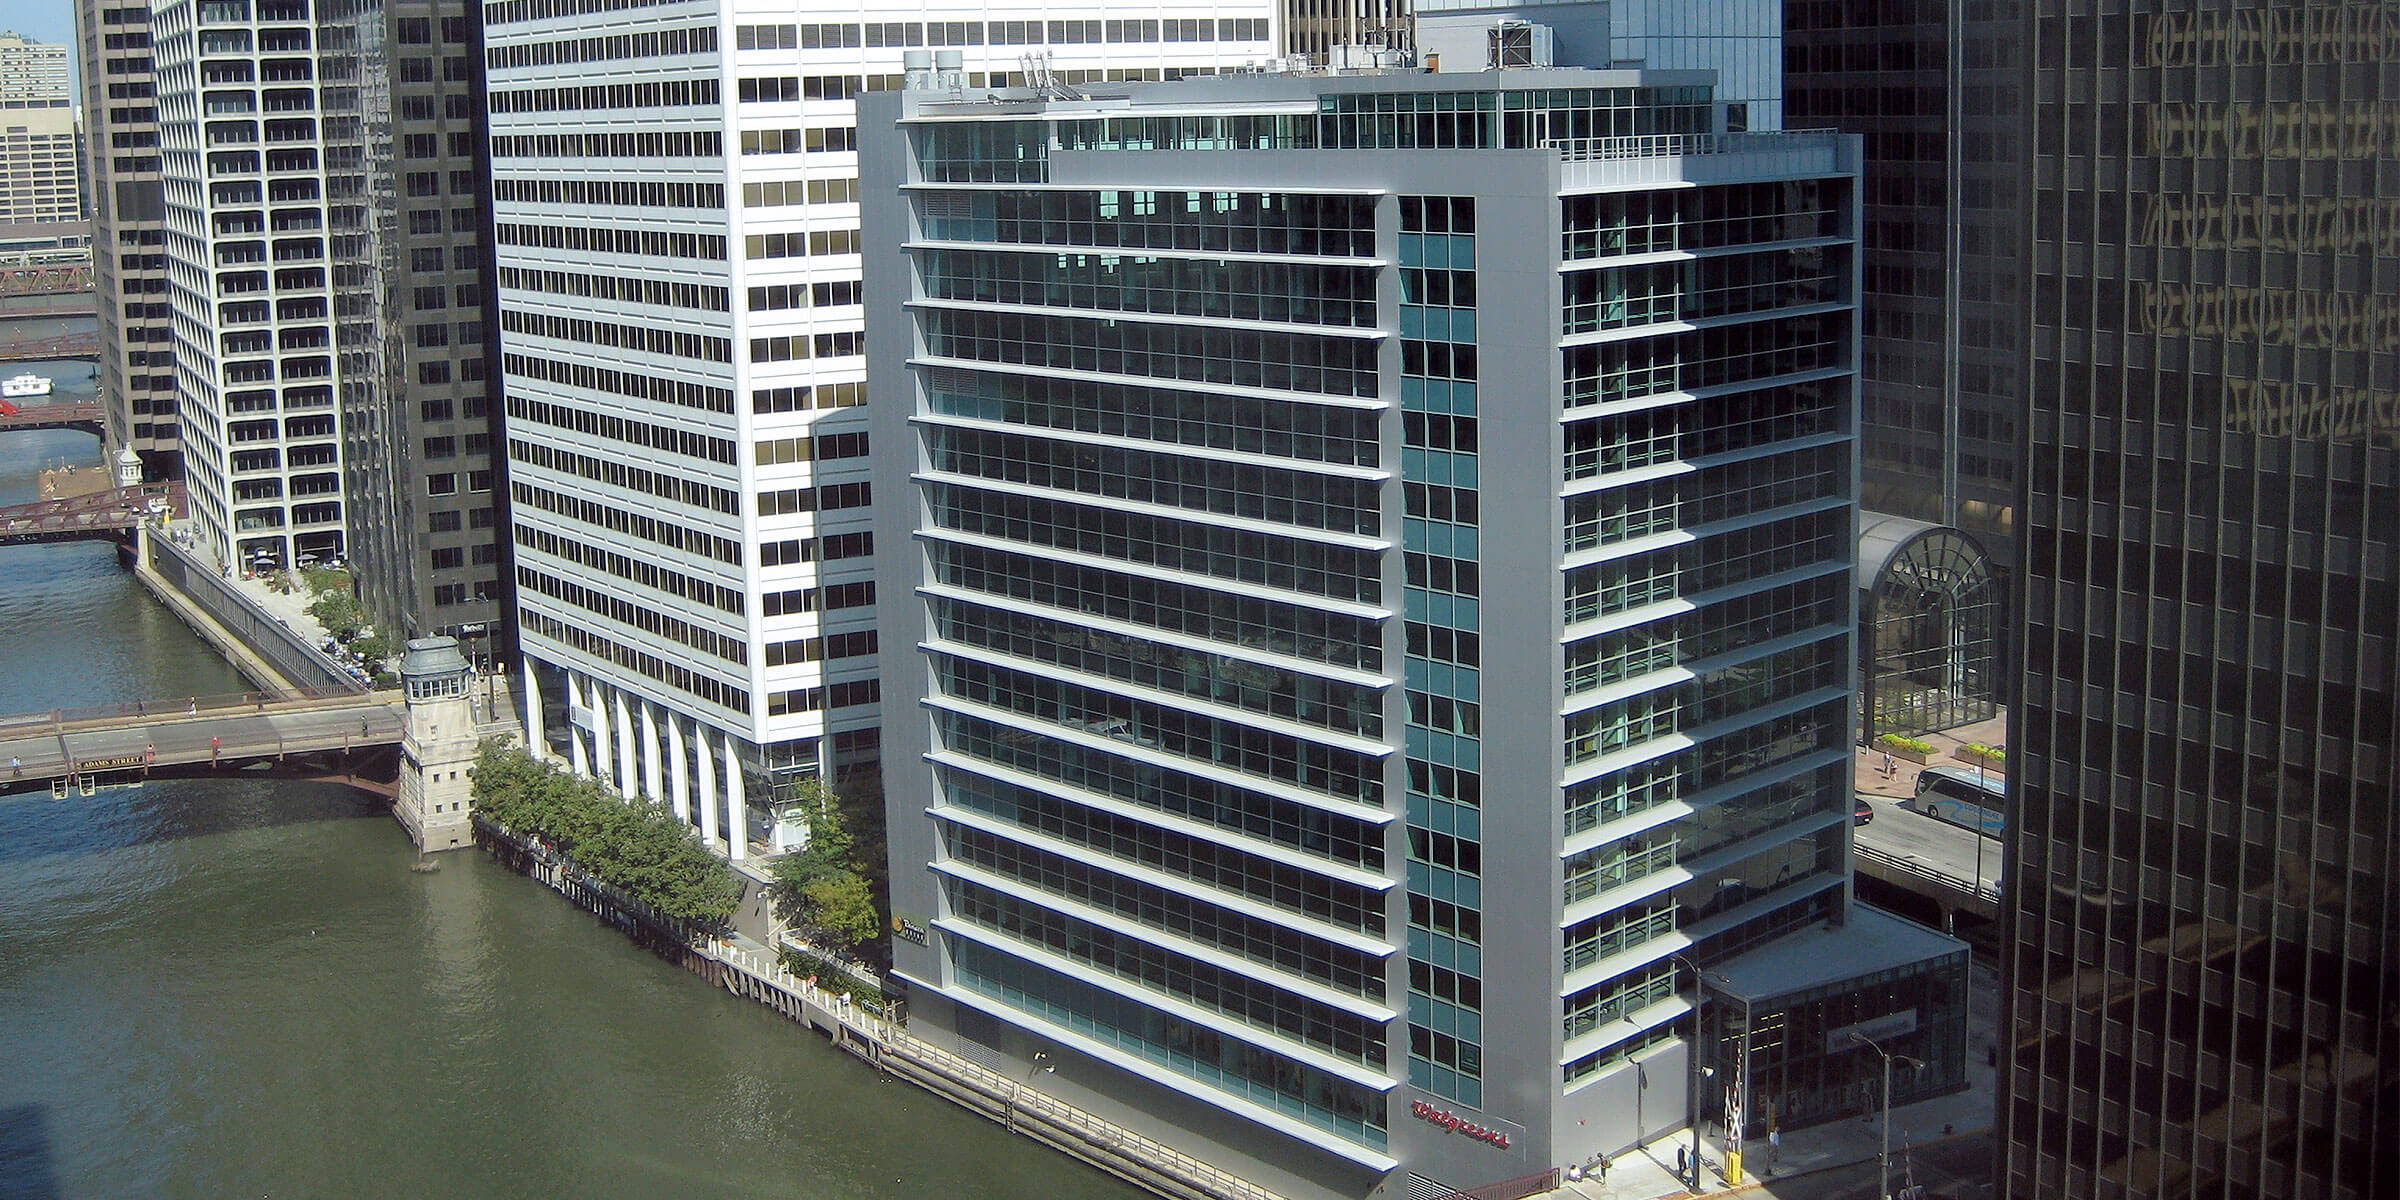 The corporate headquarters for Molson Coors Beverage Company in Chicago, Illinois